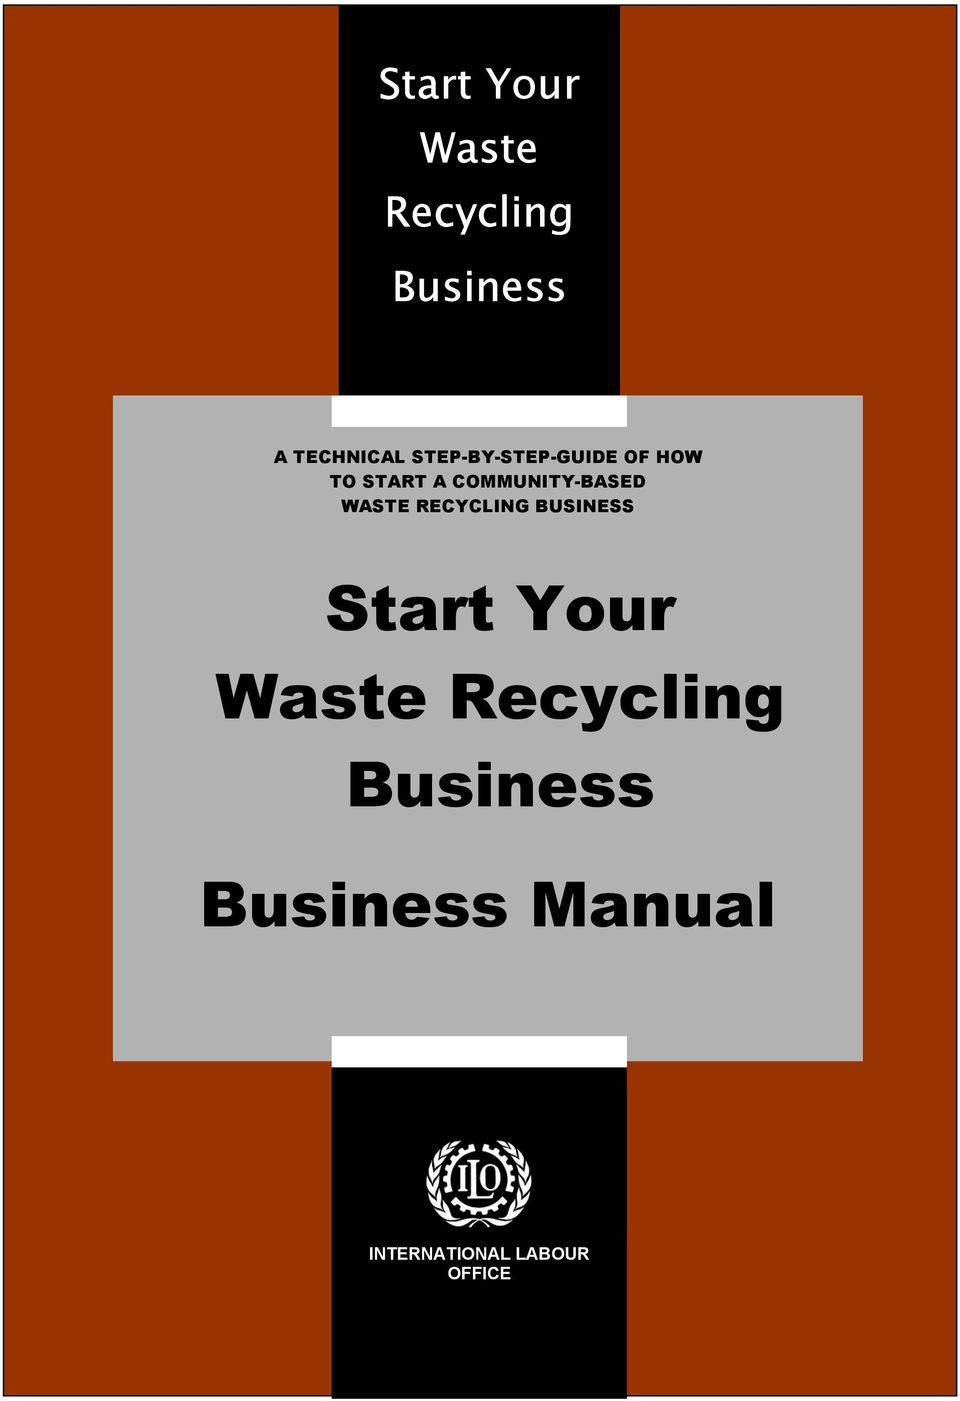 COMMUNITY-BASED WASTE RECYCLING BUSINESS Start Your